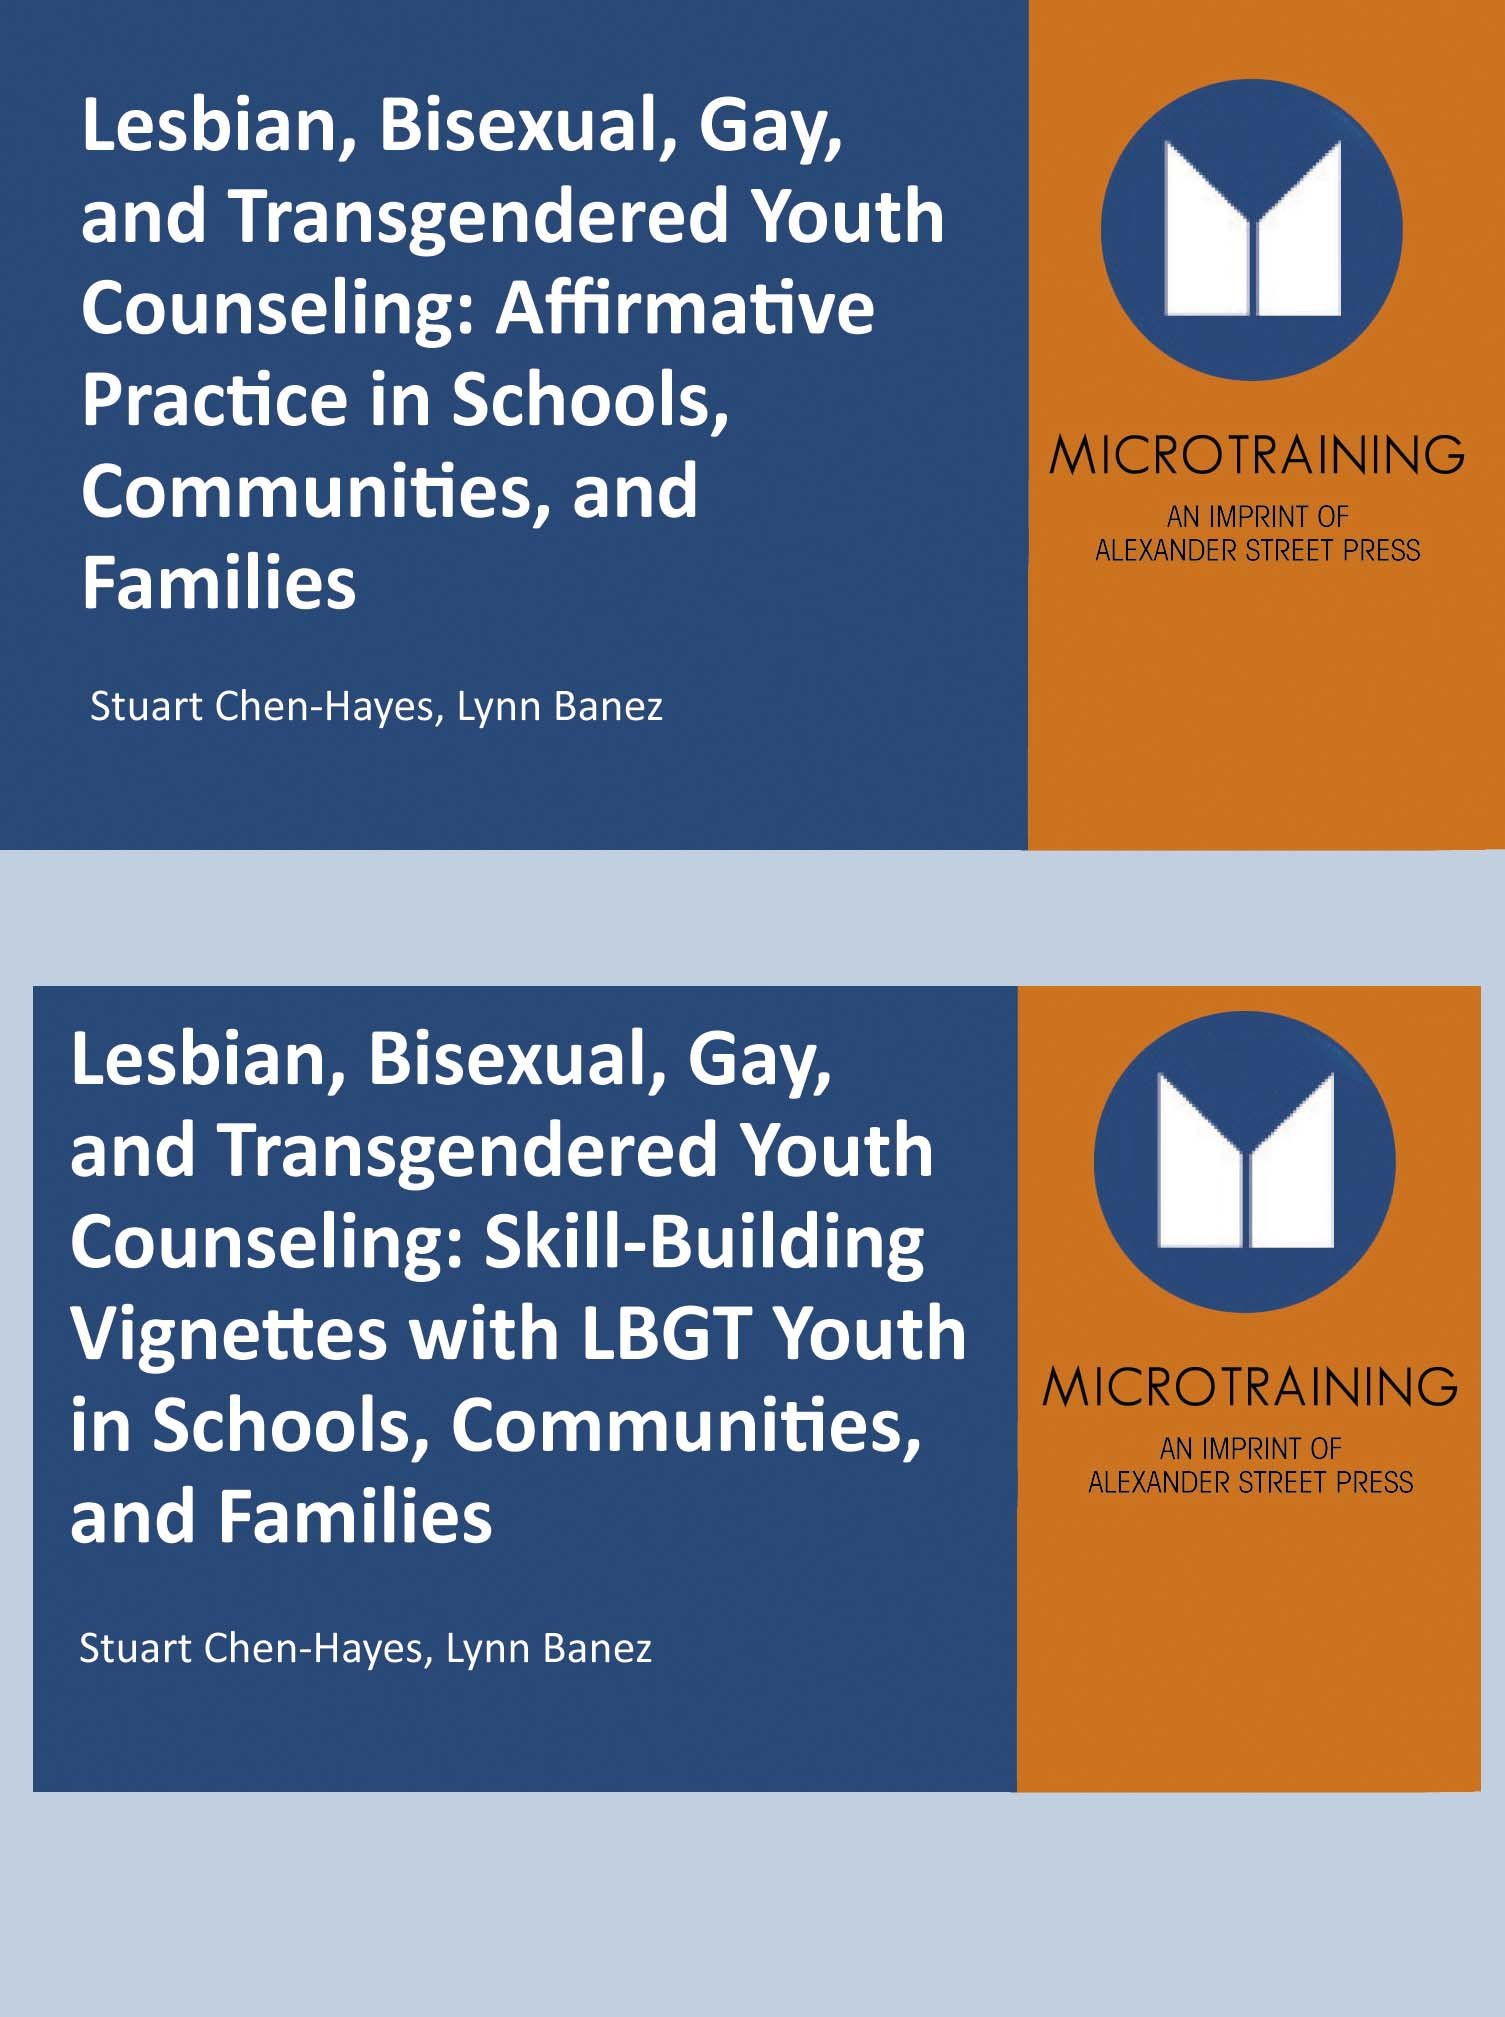 Lesbian, Bisexual, Gay & Transgendered Youth Counseling Set - Educational Version with Public Performance Rights